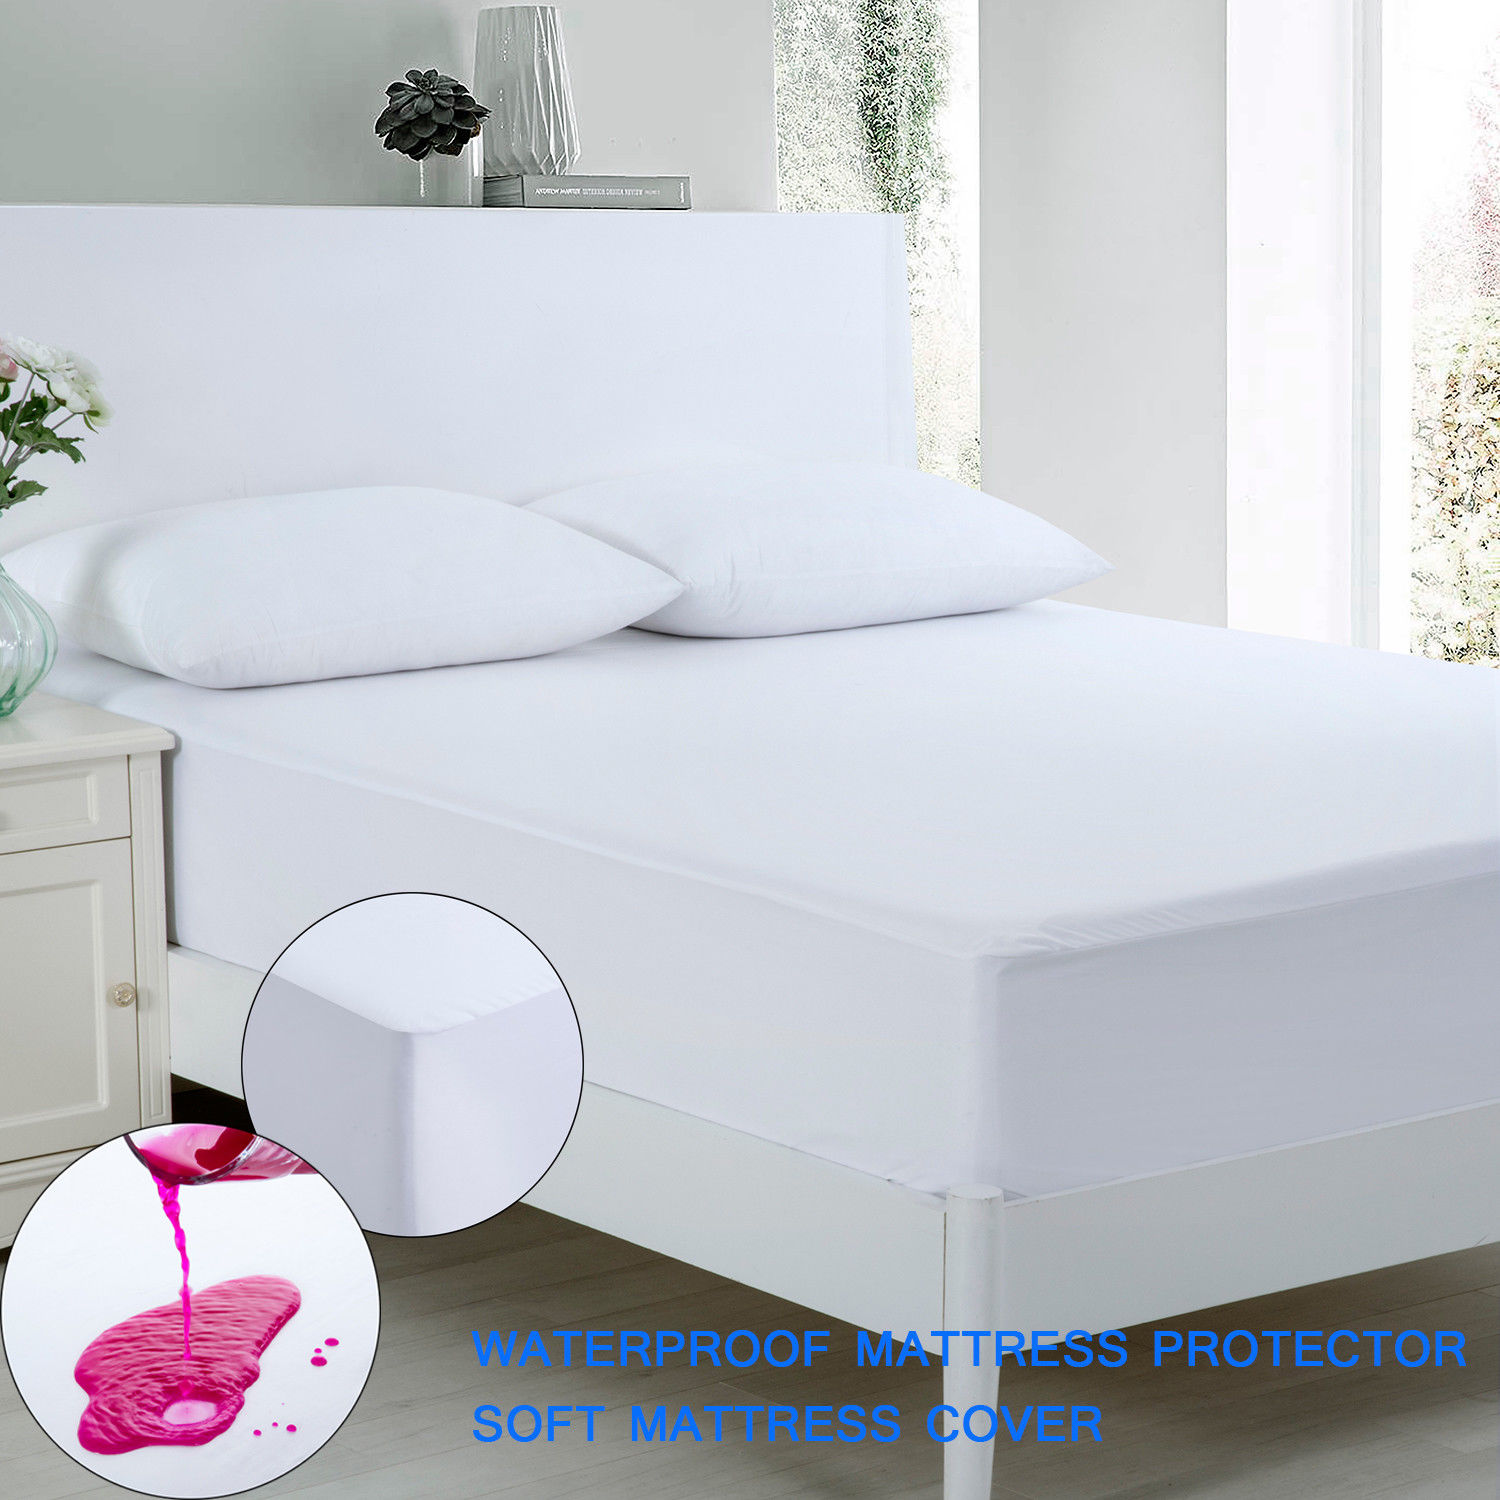 anti allergy 100 waterproof mattress protector cover twin full queen king size ebay. Black Bedroom Furniture Sets. Home Design Ideas